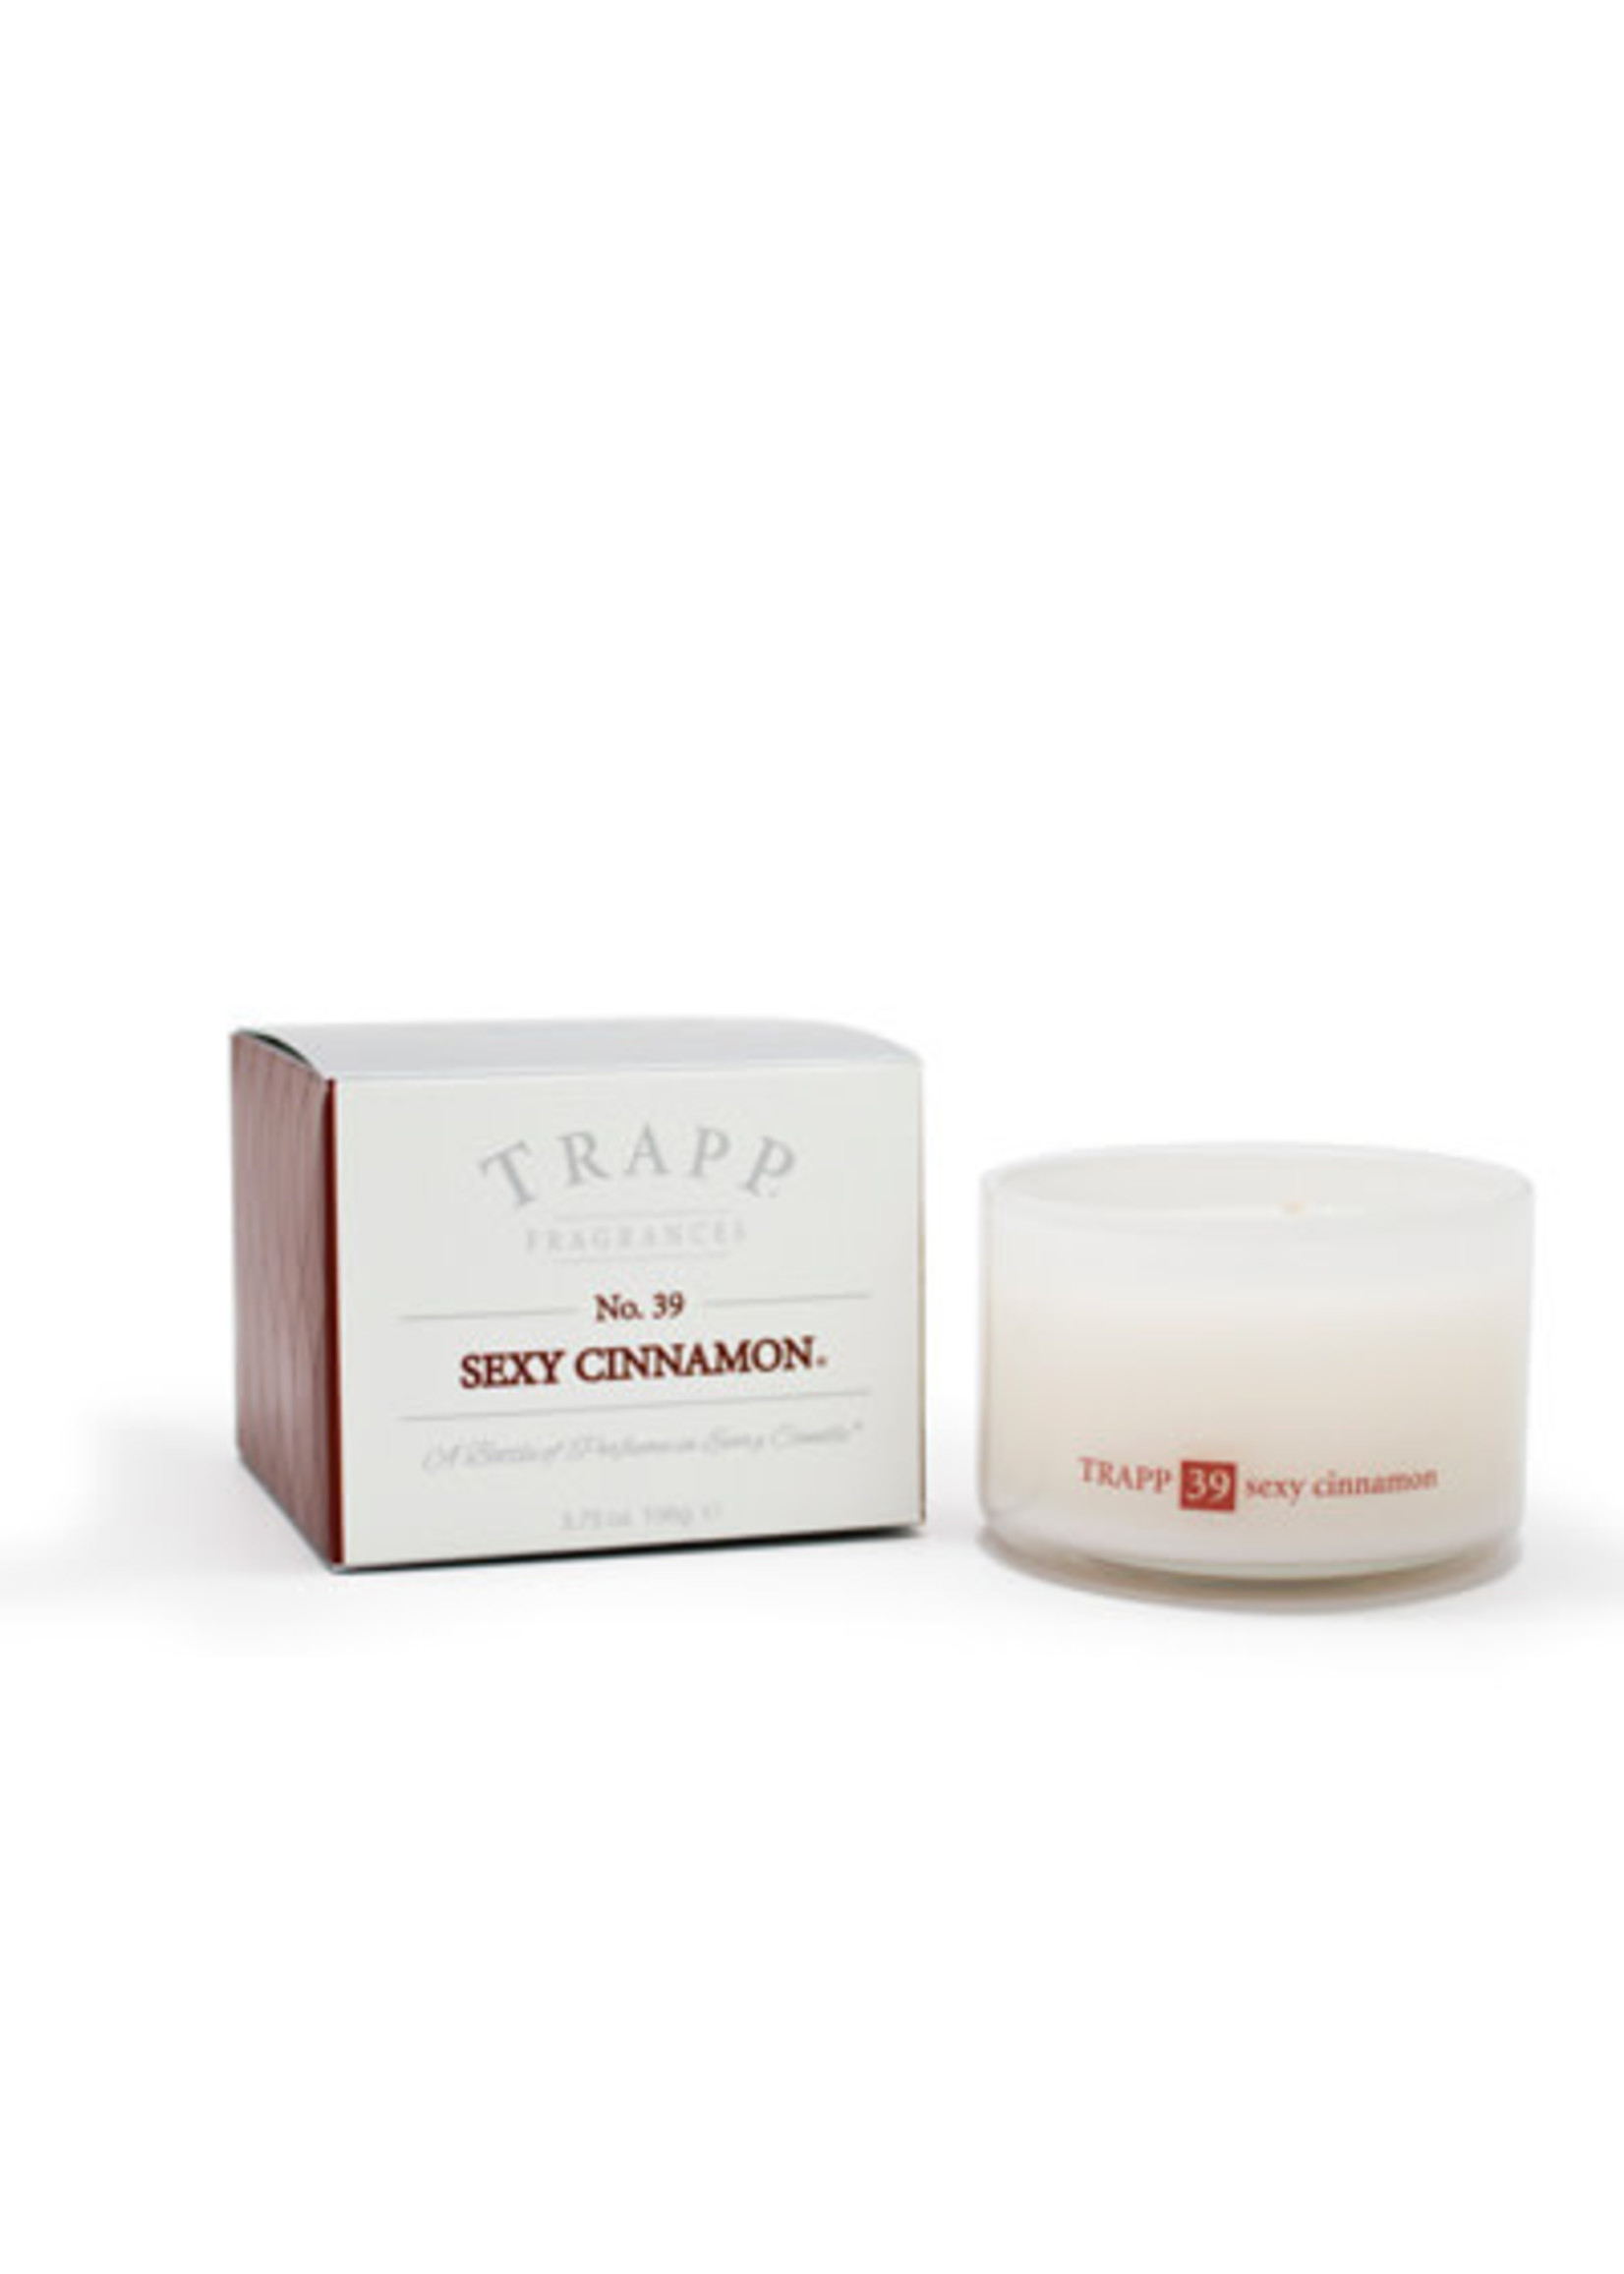 Trapp Candles Ambiance Collection - No. 39 Sexy Cinnamon - 3.75 oz. Poured Candle